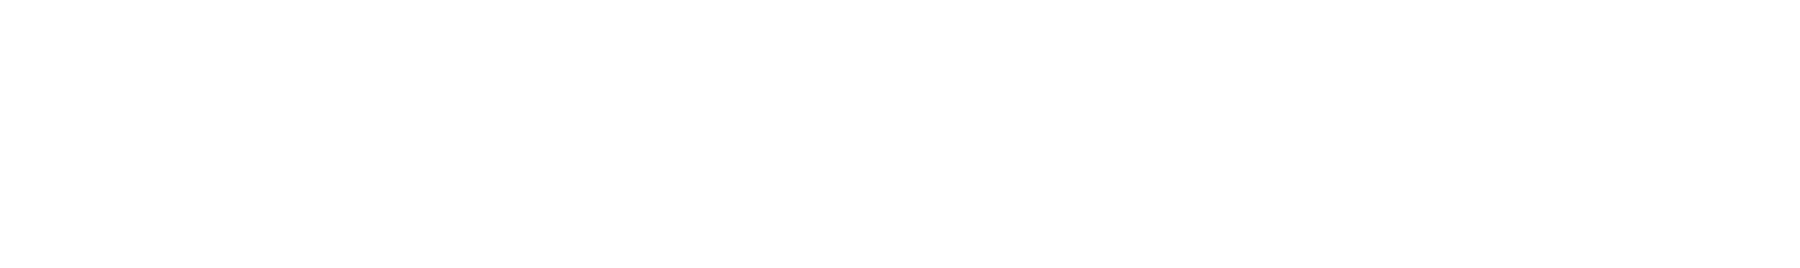 Department of Art and Art History logo